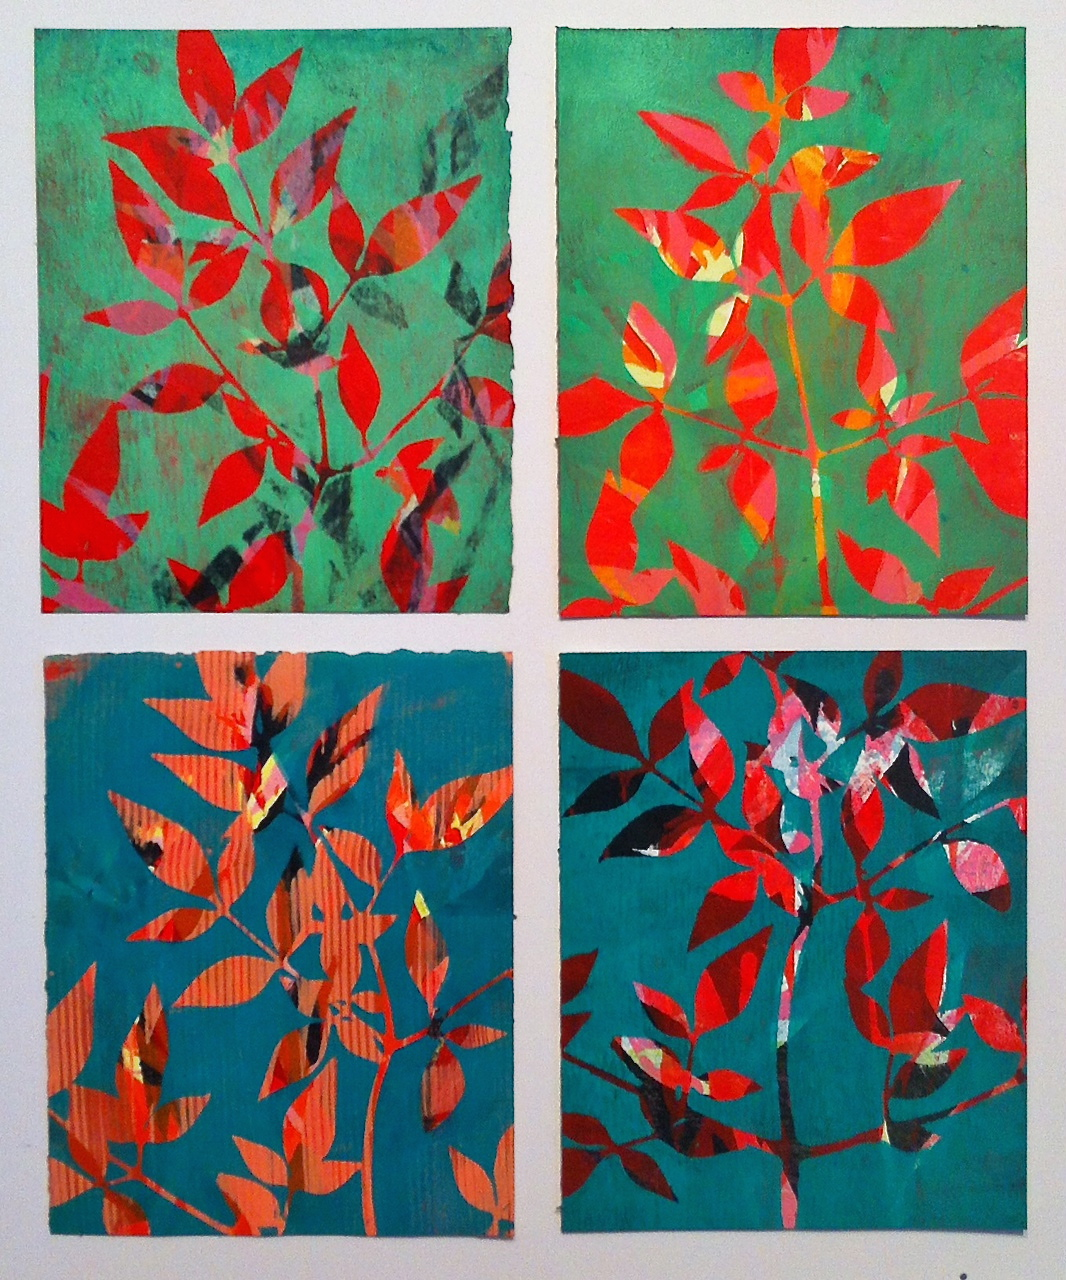 Monoprints based on recent journal ideas.